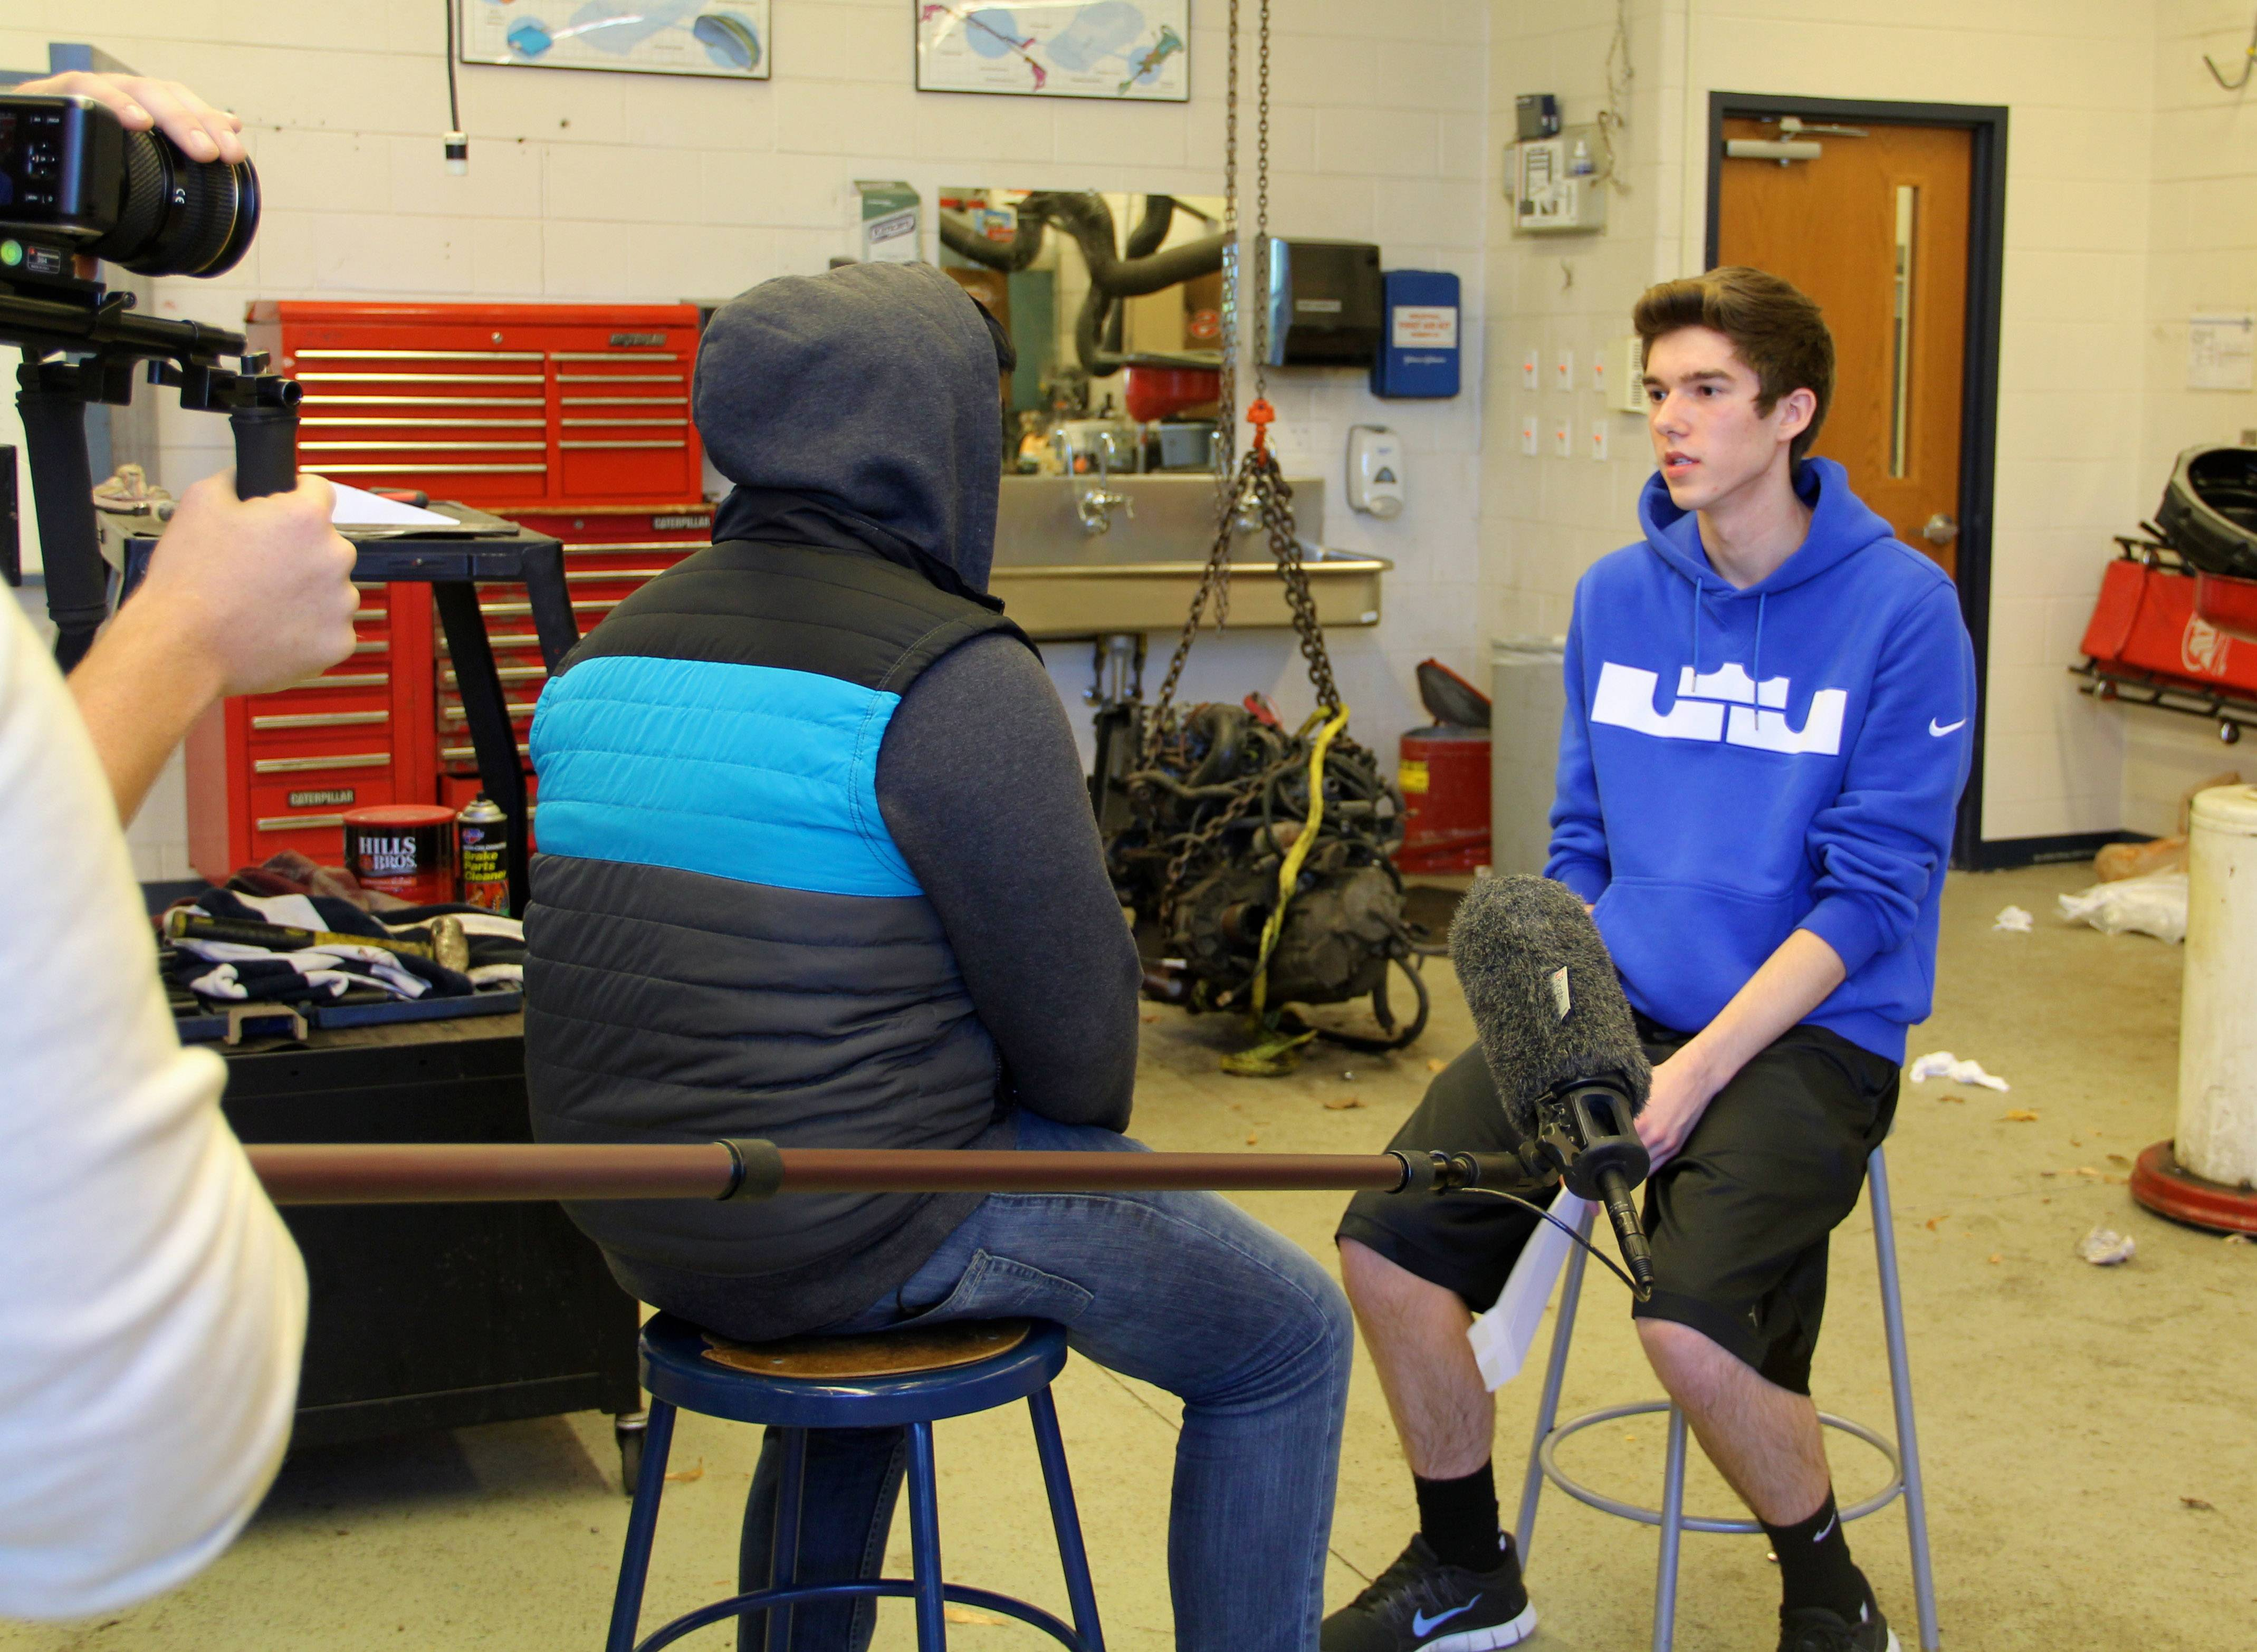 VING Project participant Jack Brandl, right, 18, breaks the news to fellow student Octavio inside the Vernon Hills High School shop room that Octavio is the recipient of a $1,000 gift.